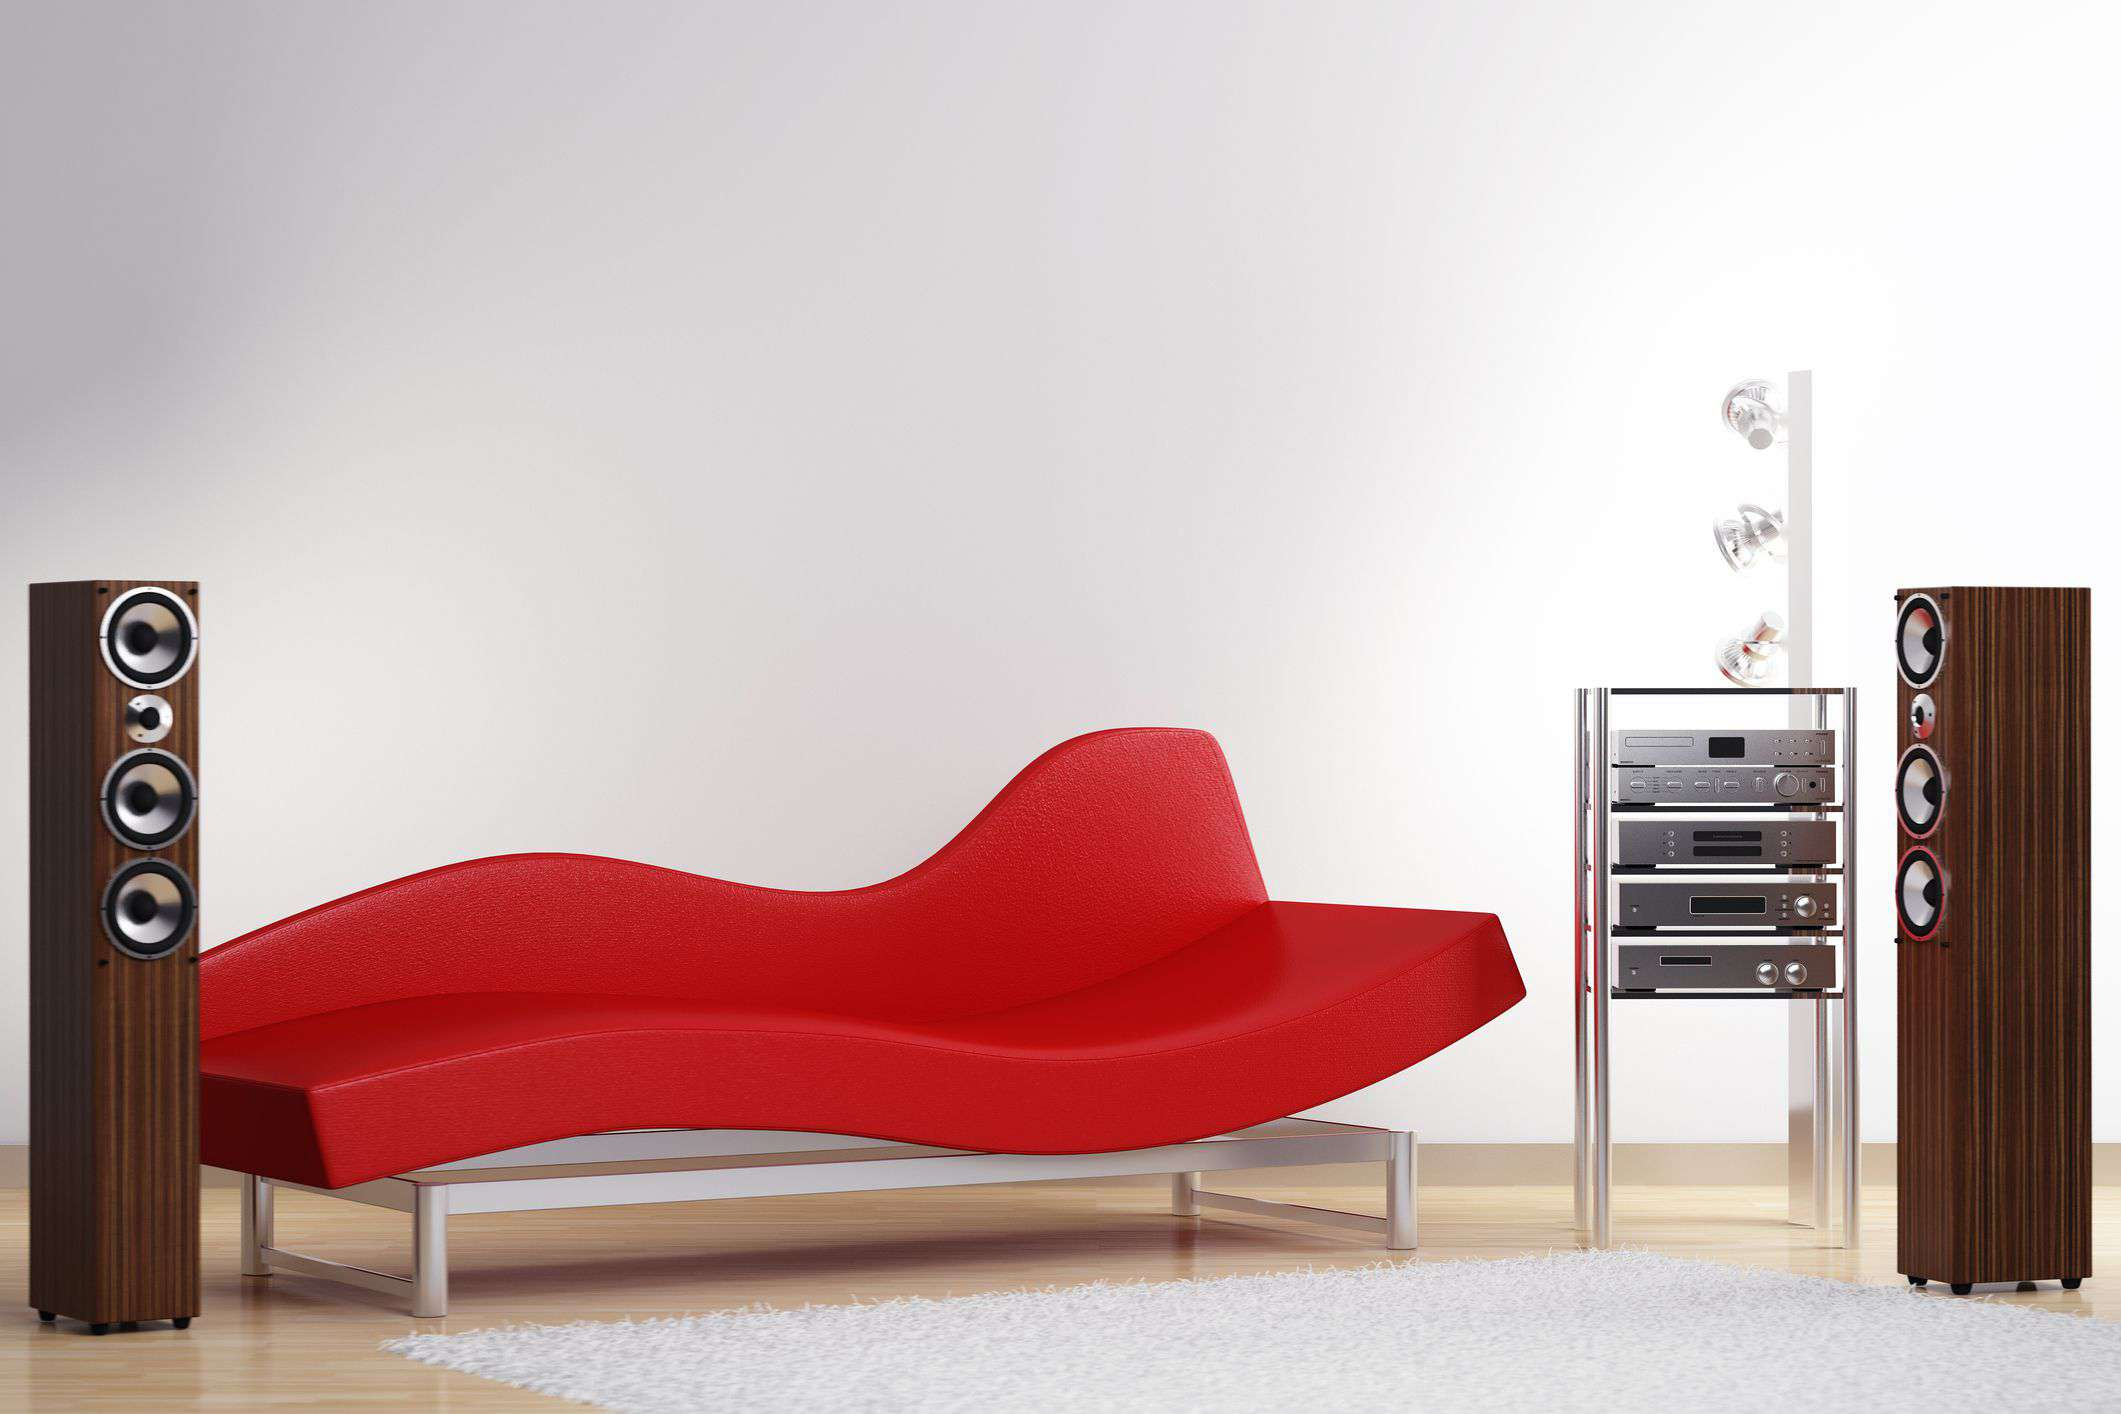 Standing floor speakers and a home receiver system on either side of a reclining couch